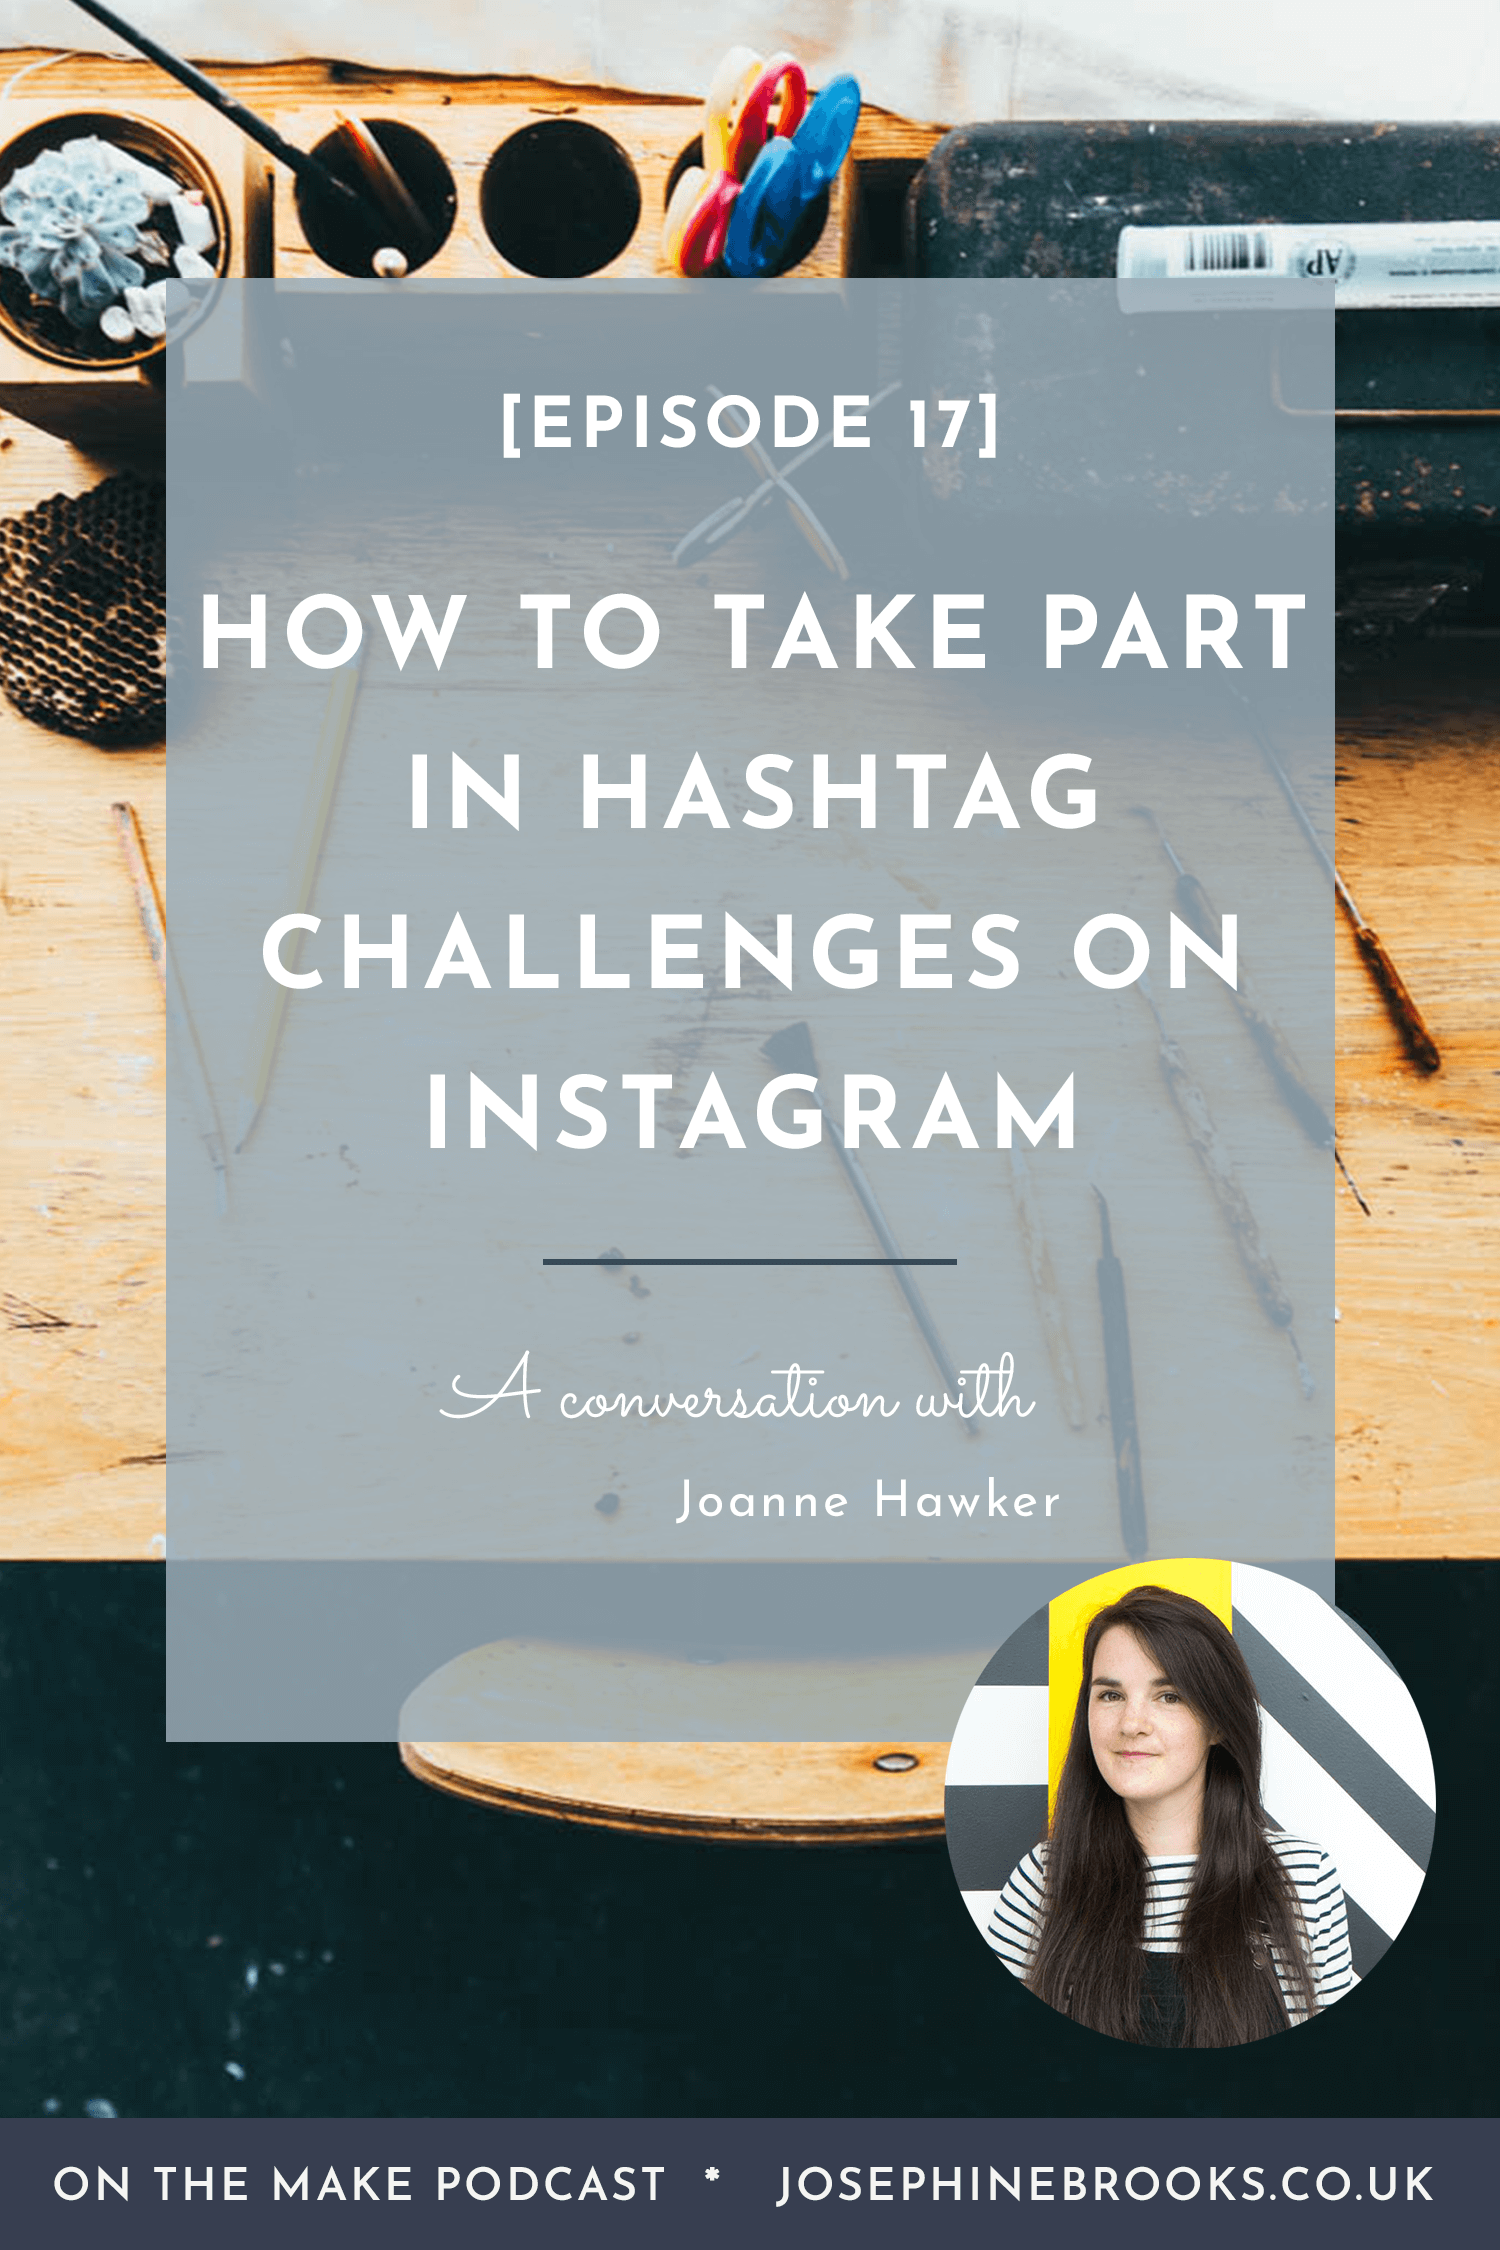 How to take part in hashtag challenges on Instagram with Joanne Hawker from #meetthemakerweek and #marchmeetthemaker